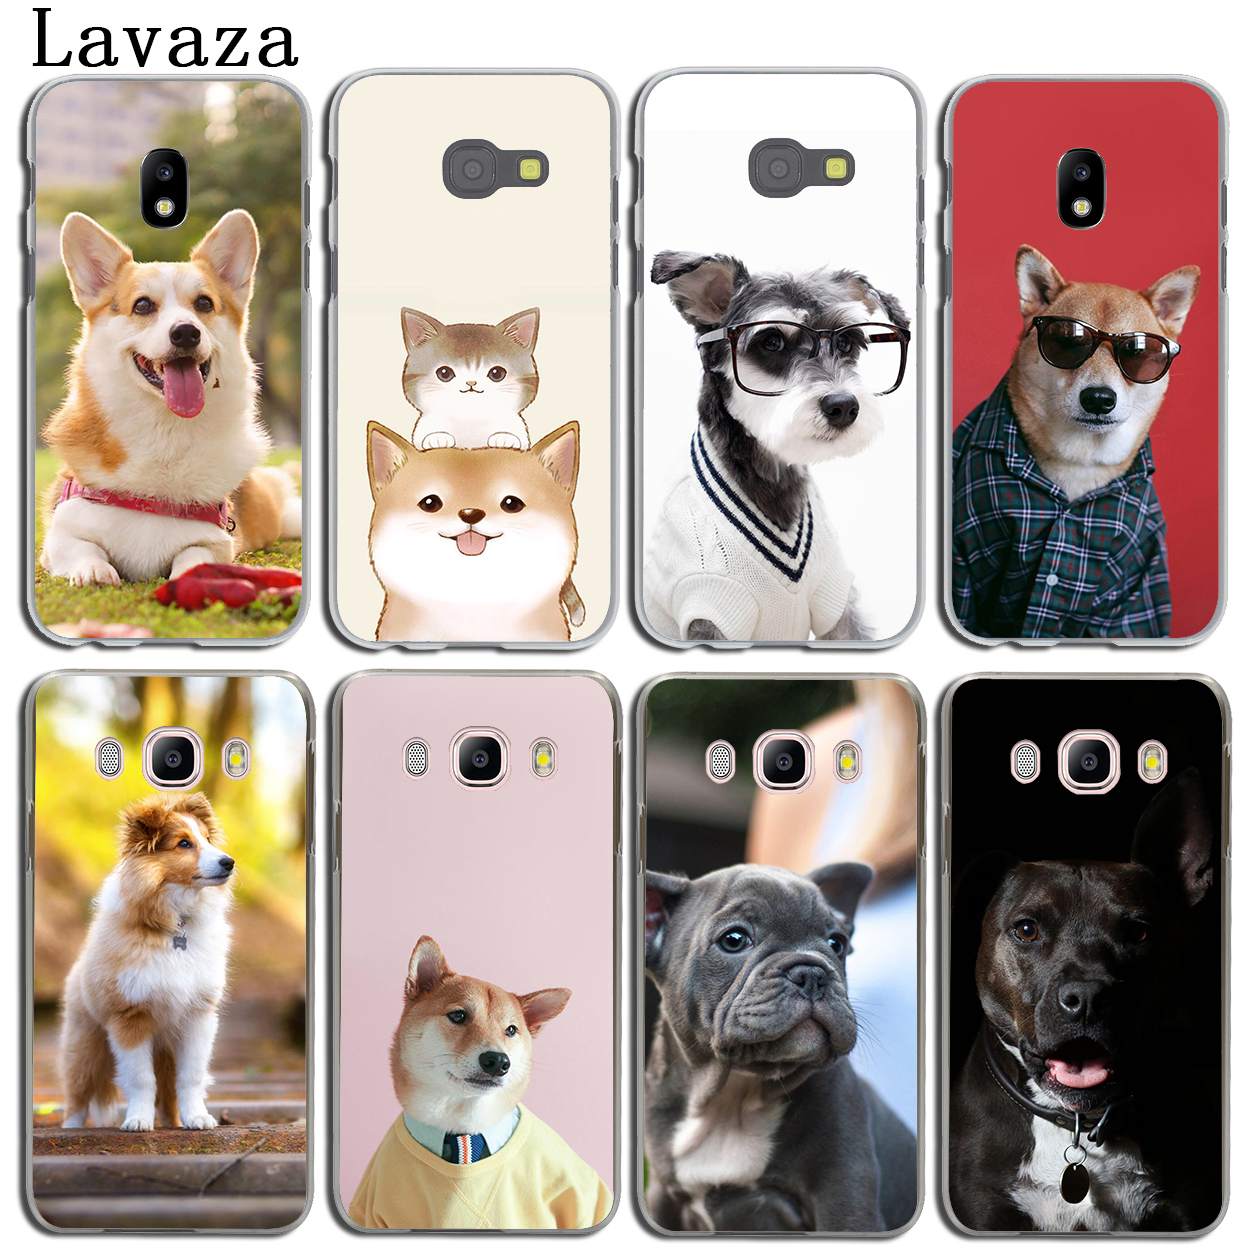 Lavaza Cute French Bulldog corgi Golden Dog Phone Case for Samsung Galaxy J3 J1 J2 J7 J5 2015 2016 2017 J2 Pro Ace J7 J5 Prime